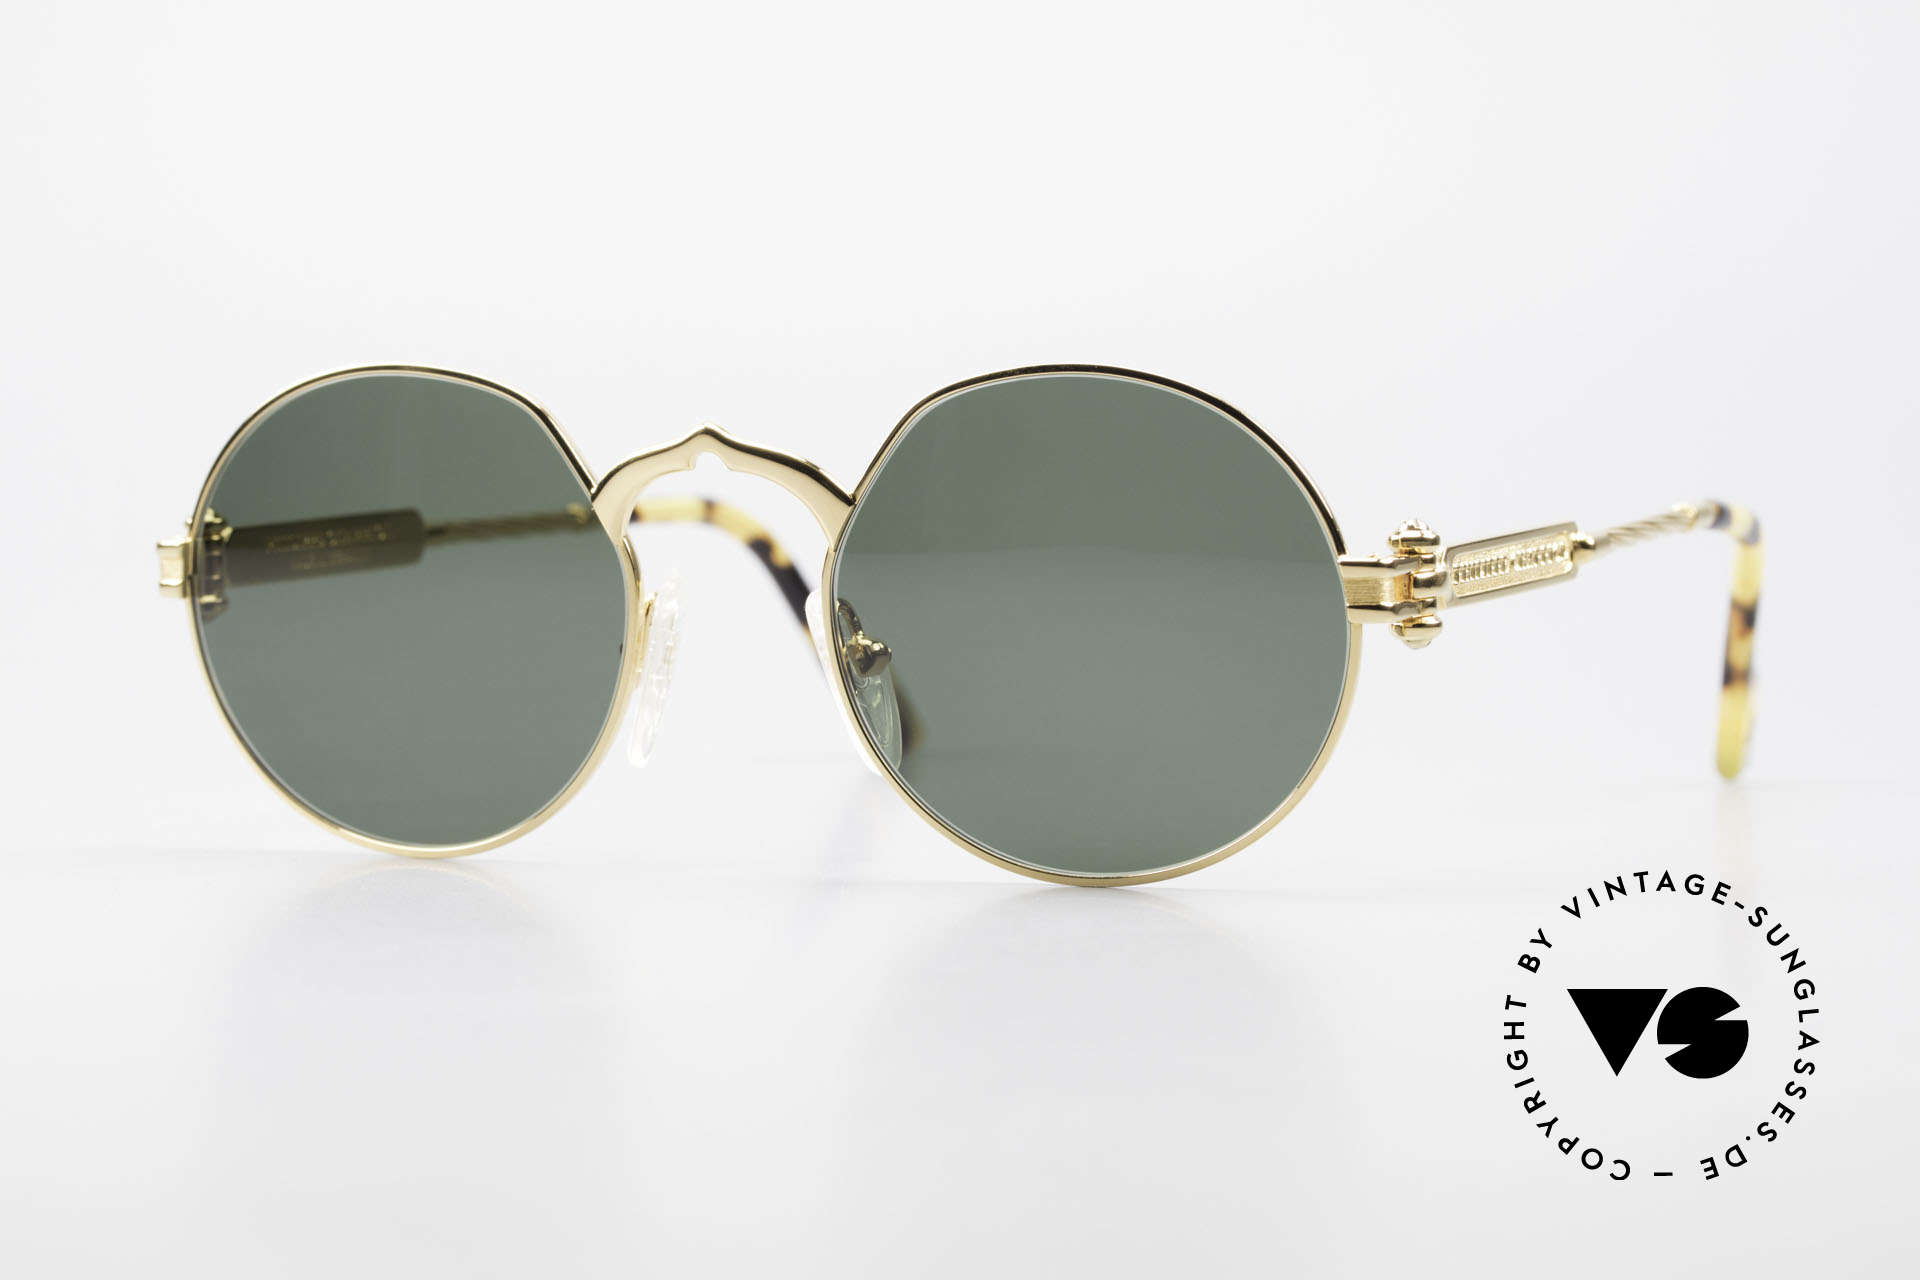 Philippe Charriol 92CPT Insider Luxury Sunglasses 80's, round 80's insider sunglasses for all lovers of luxury, Made for Men